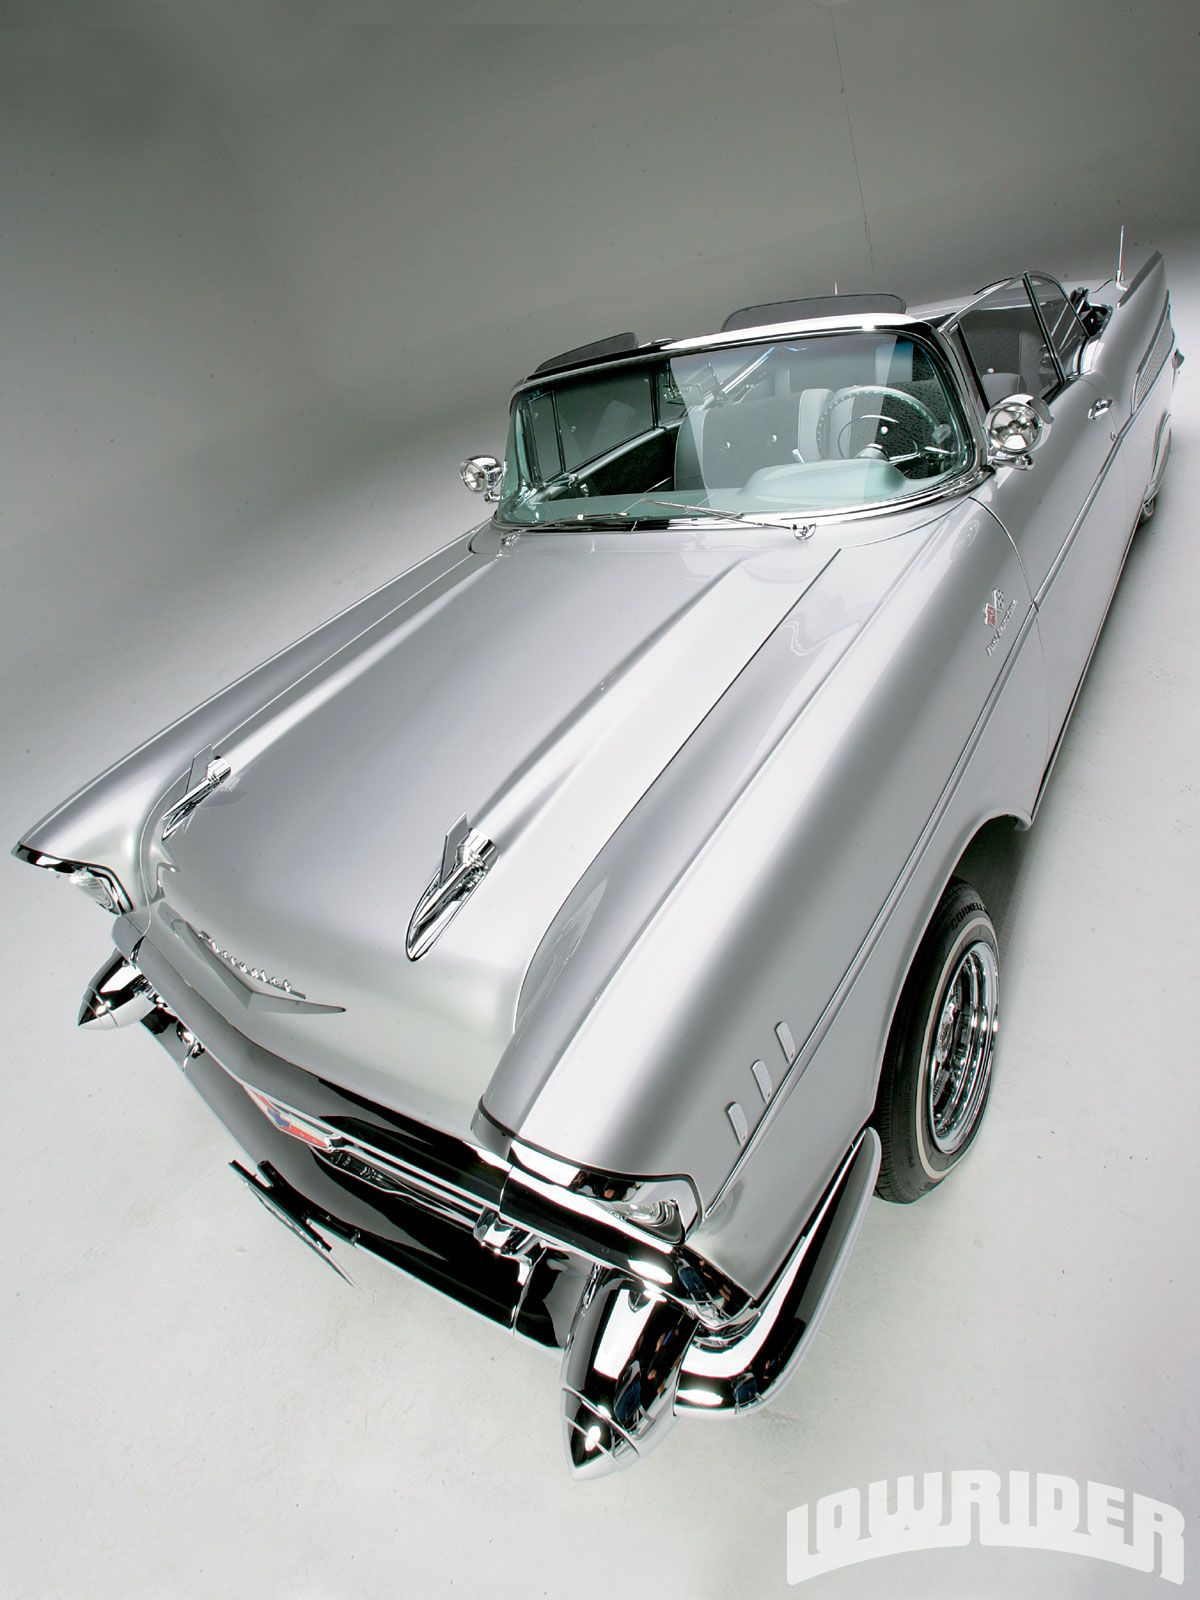 View this 1957 Chevrolet Bel Air Convertible Right Rear